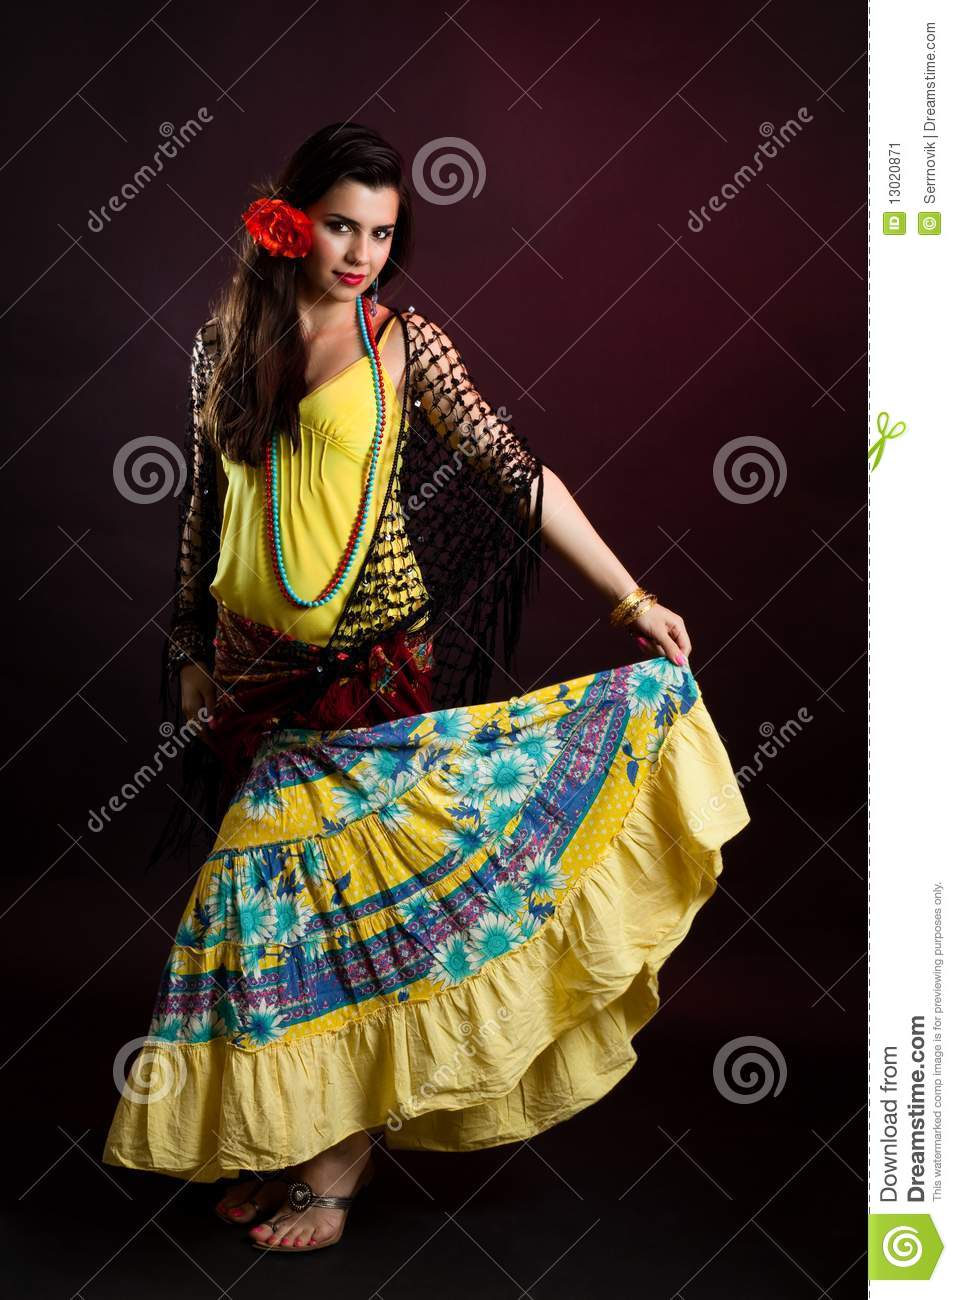 Gypsy woman dance stock image. Image of pretty, female ...